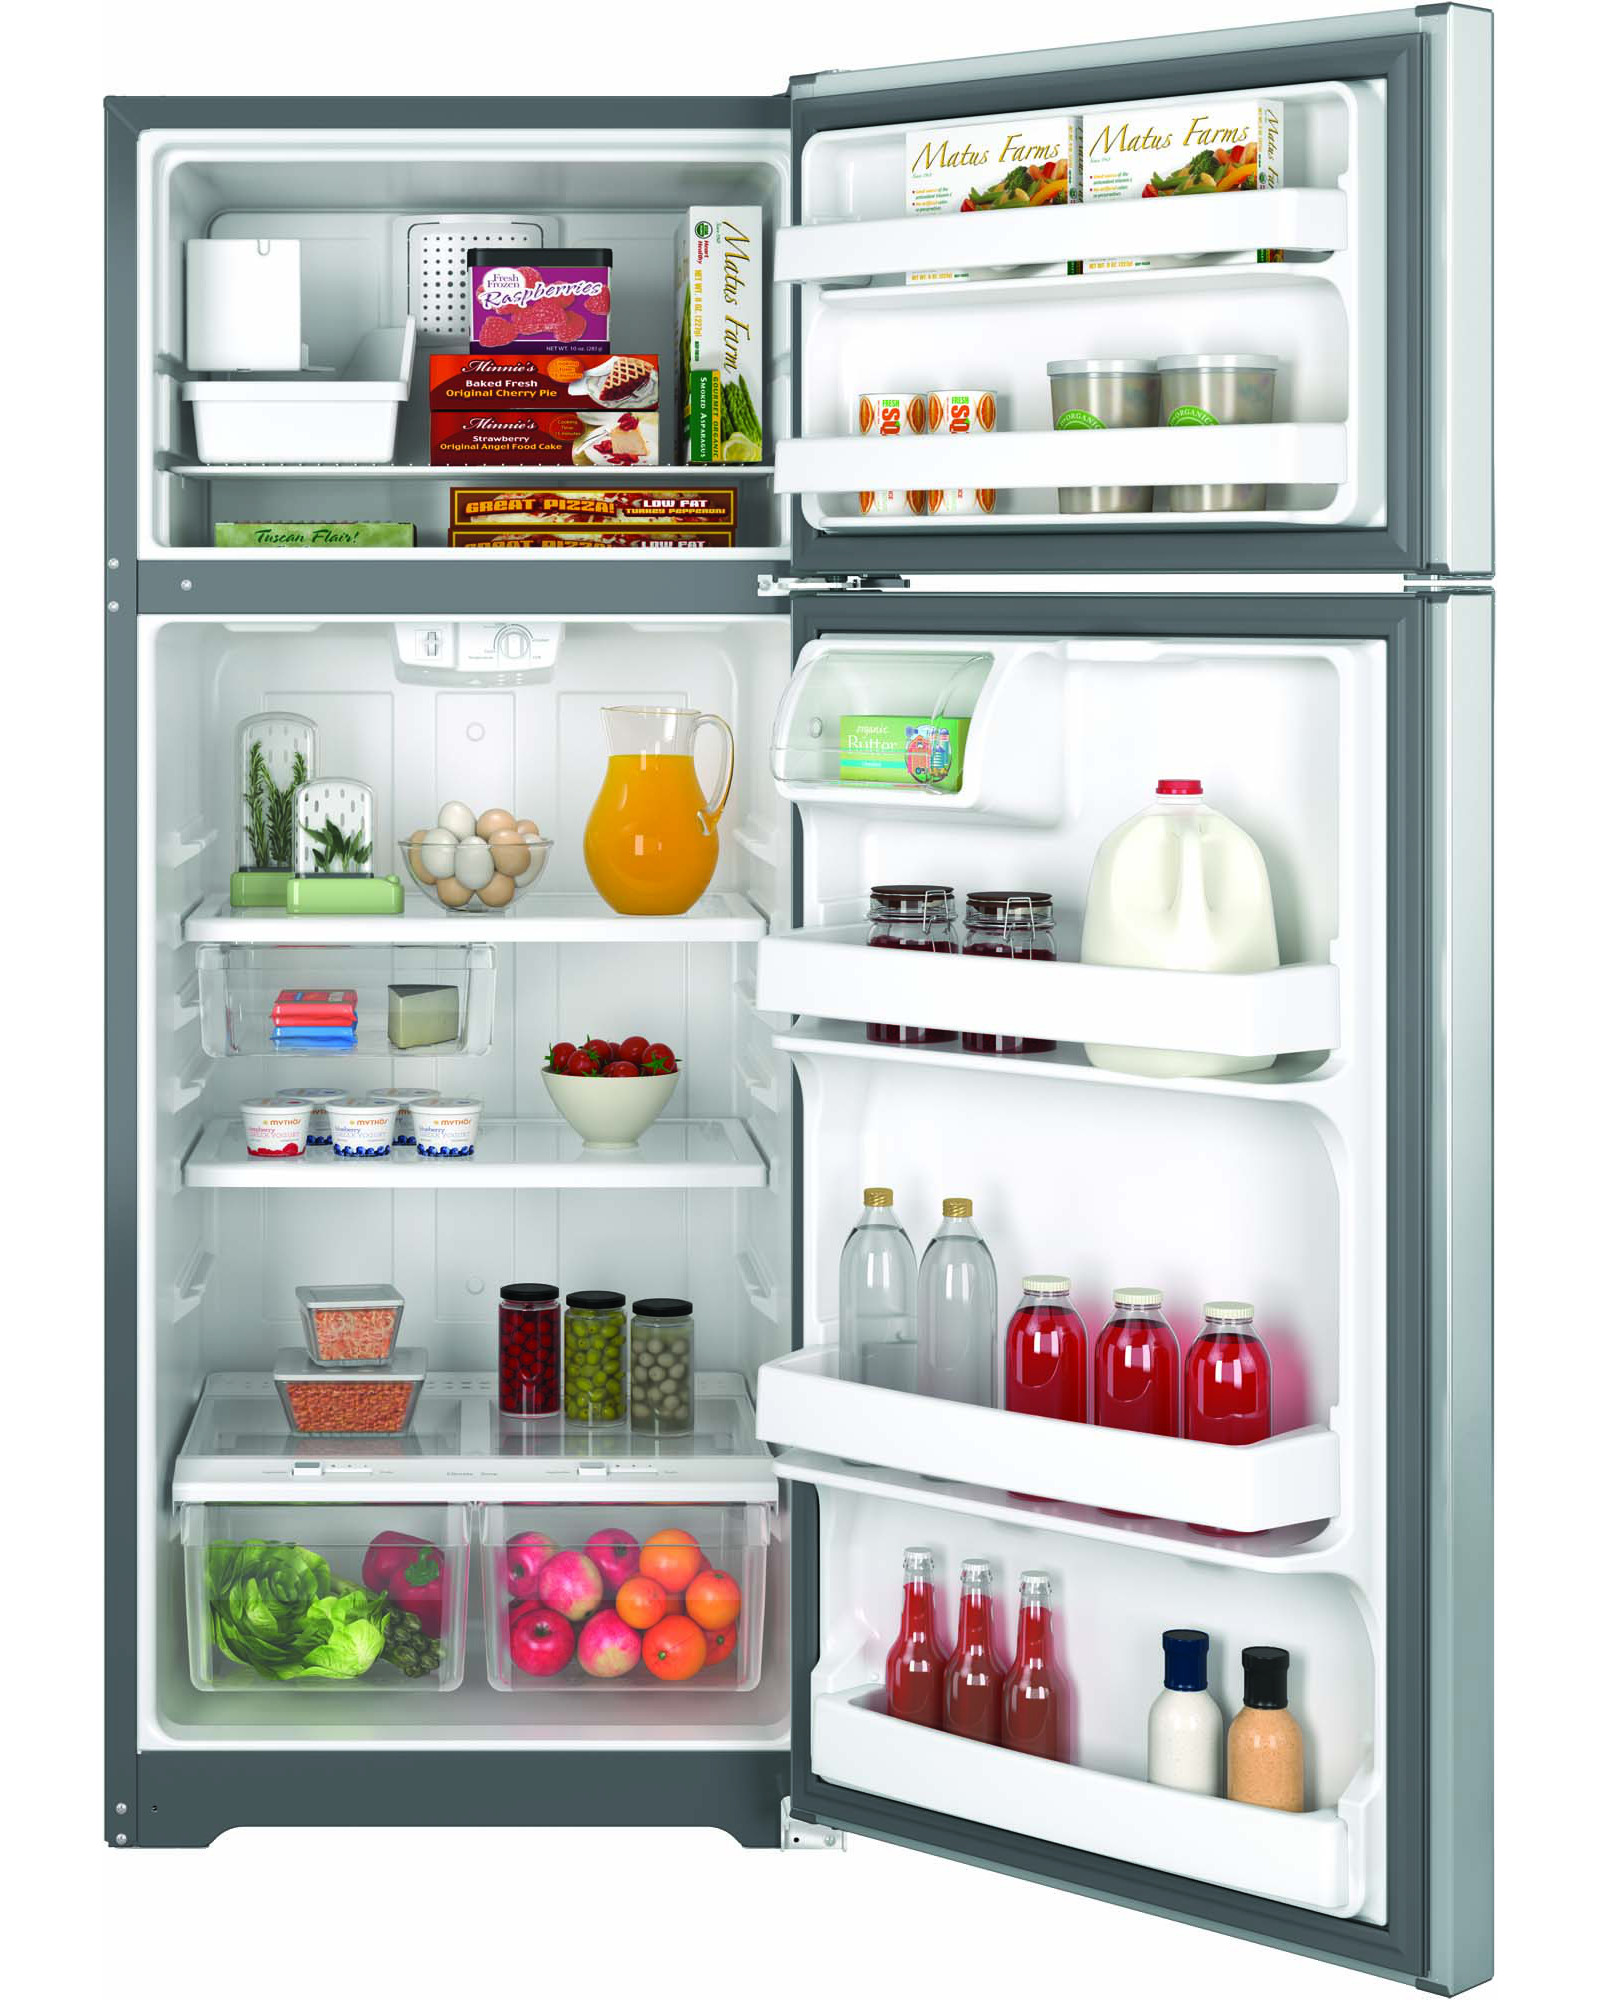 GE Appliances GIE18GSHSS 17.5 cu. ft. Top-Freezer Refrigerator - Stainless Steel